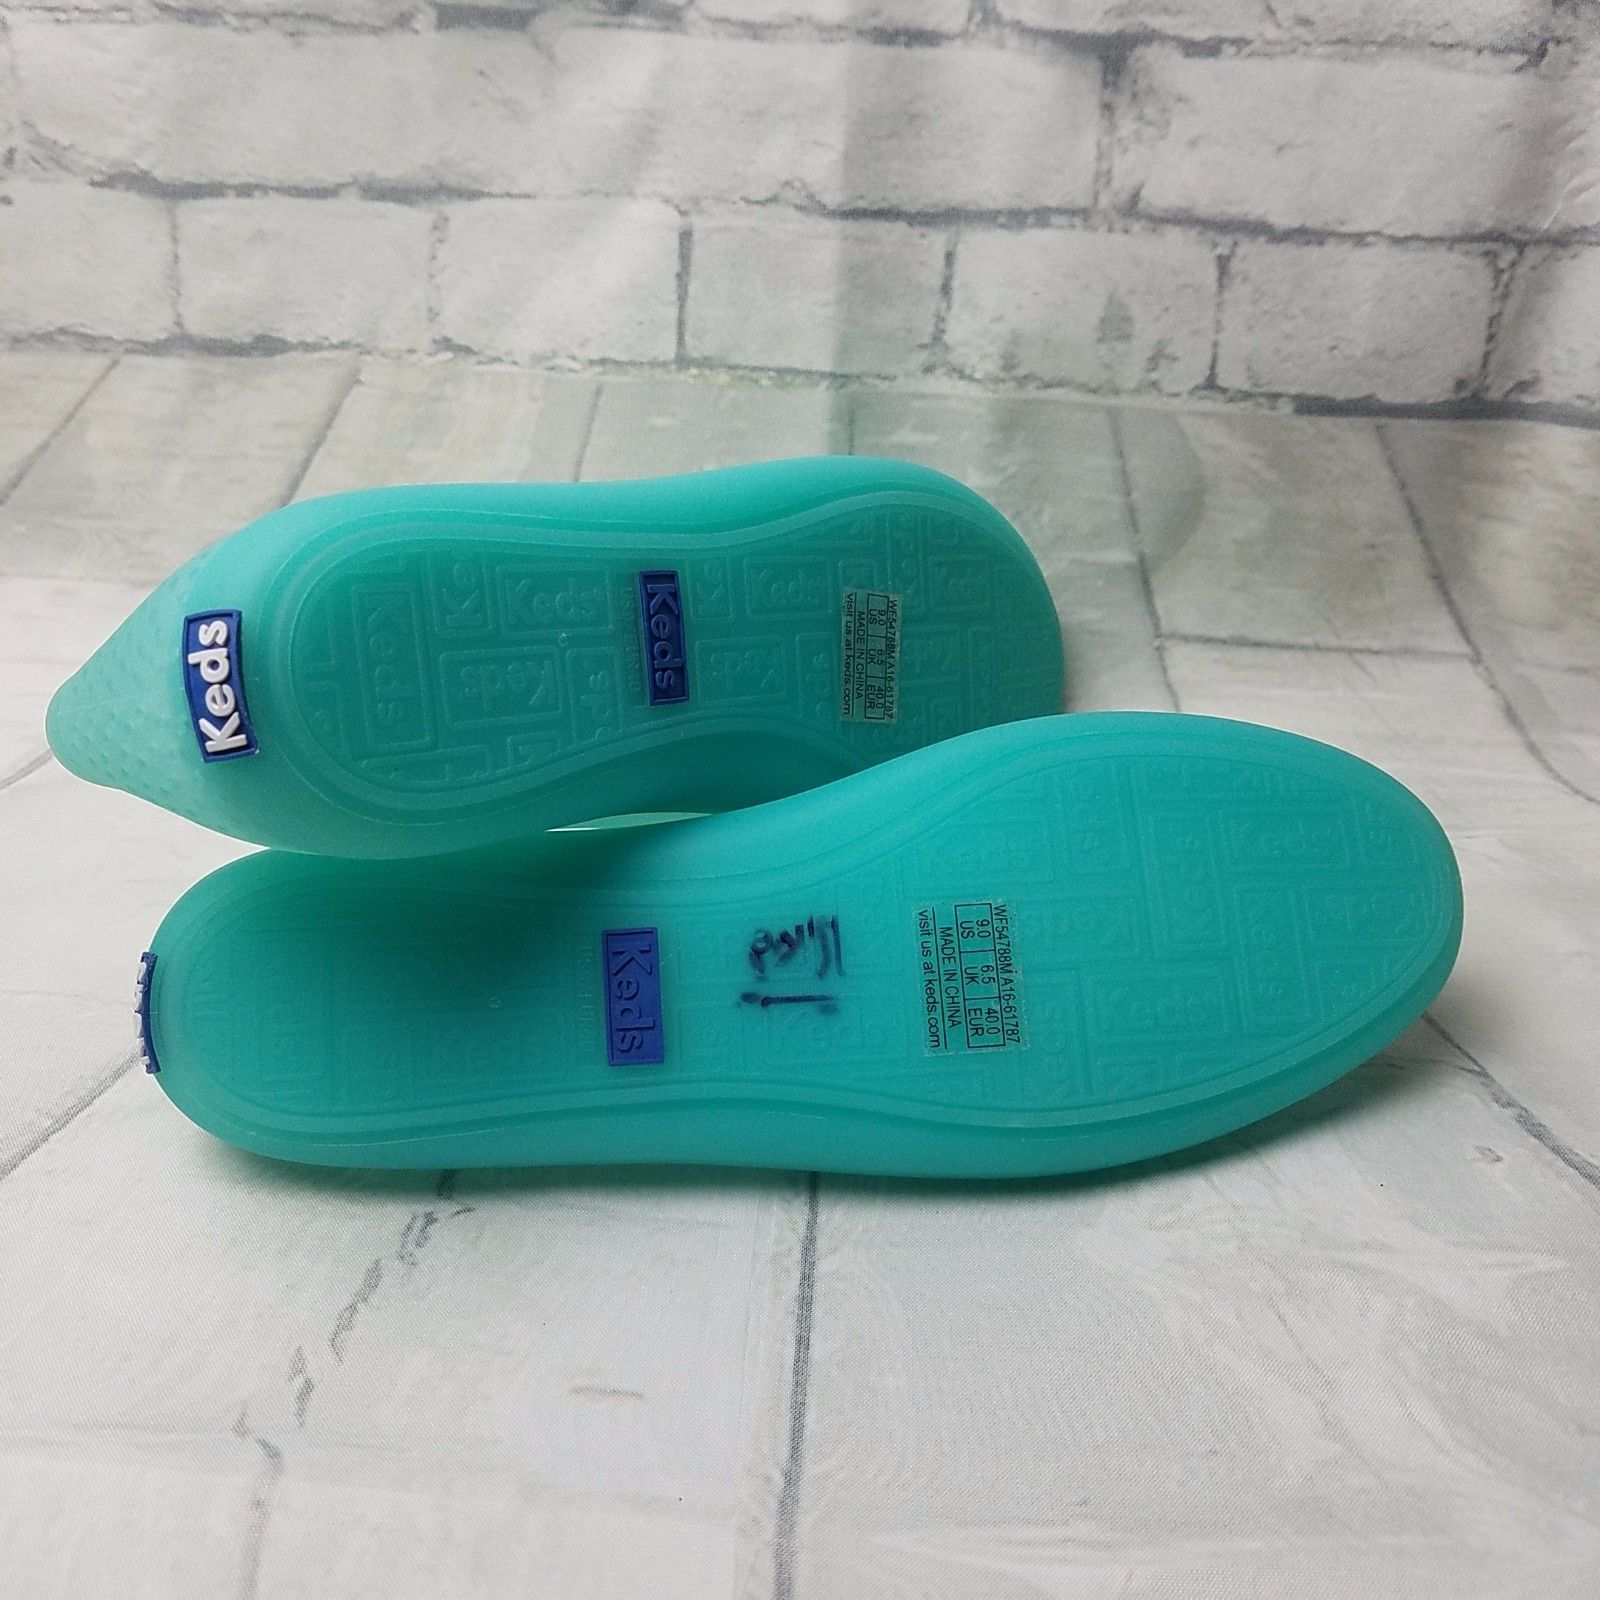 Keds Teacup Jelly Slip On Shoes Color Aqua Turquoise Rubber